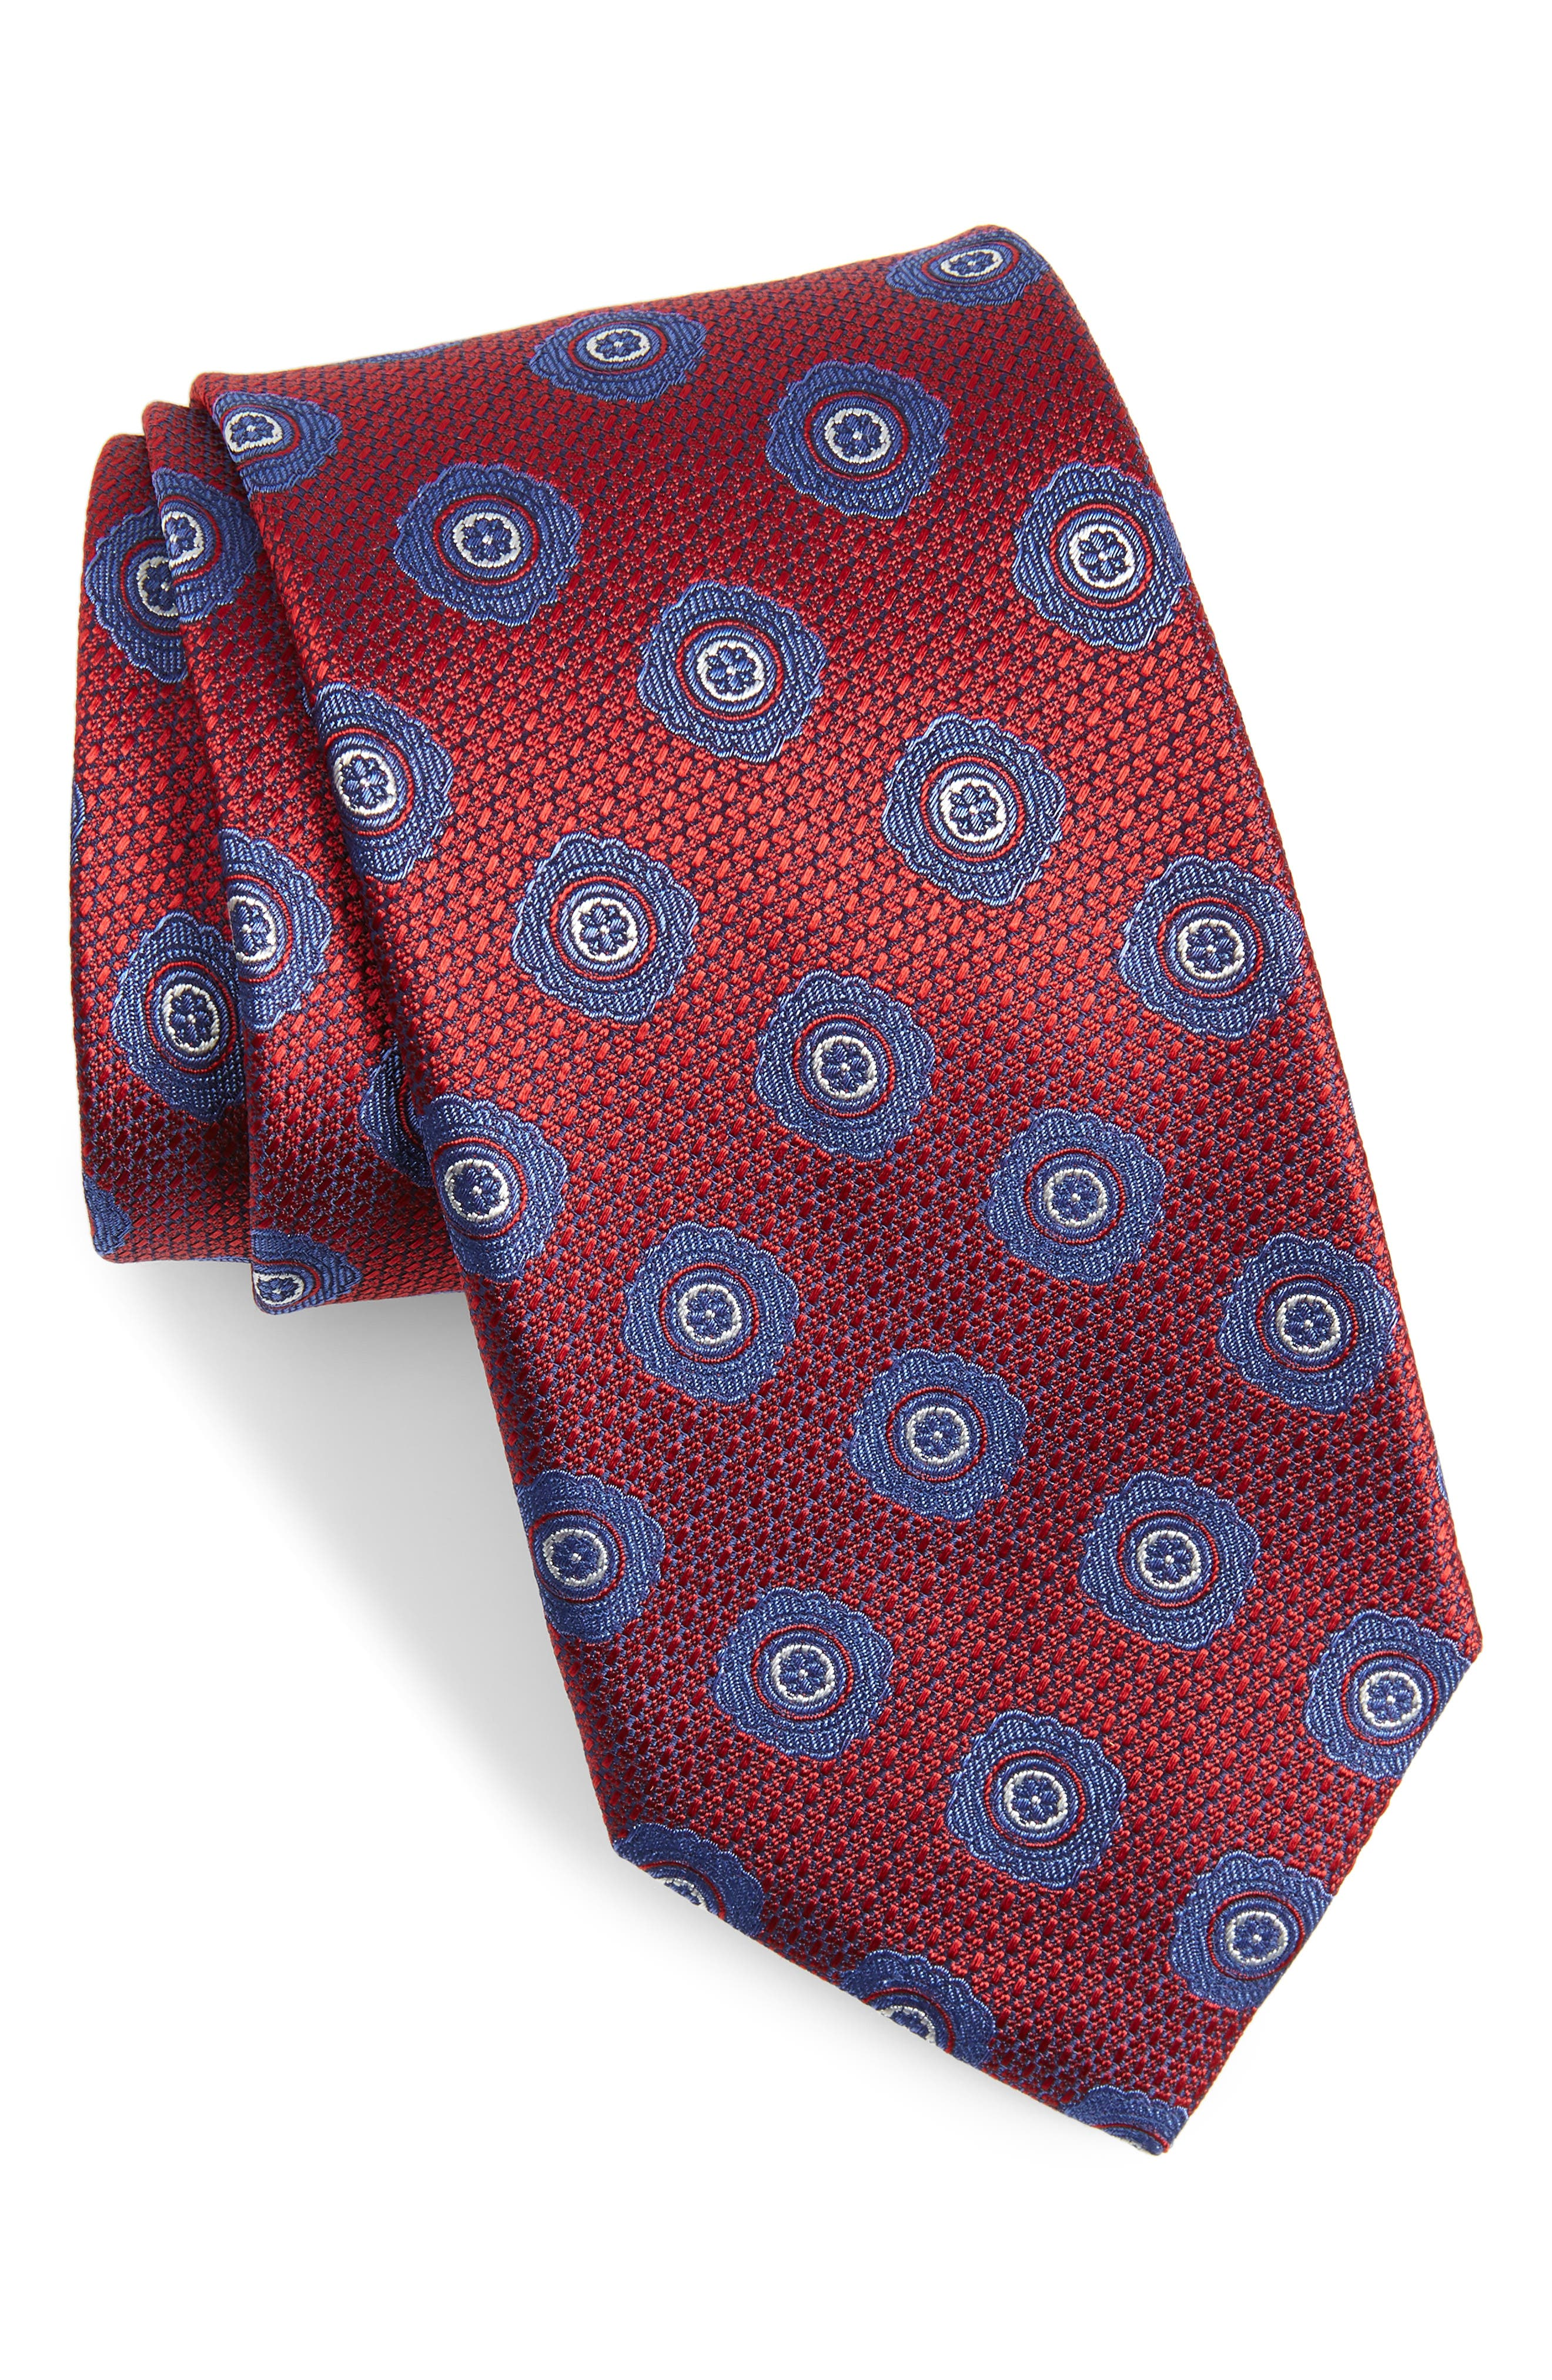 CANALI, Medallion Silk Tie, Main thumbnail 1, color, RED